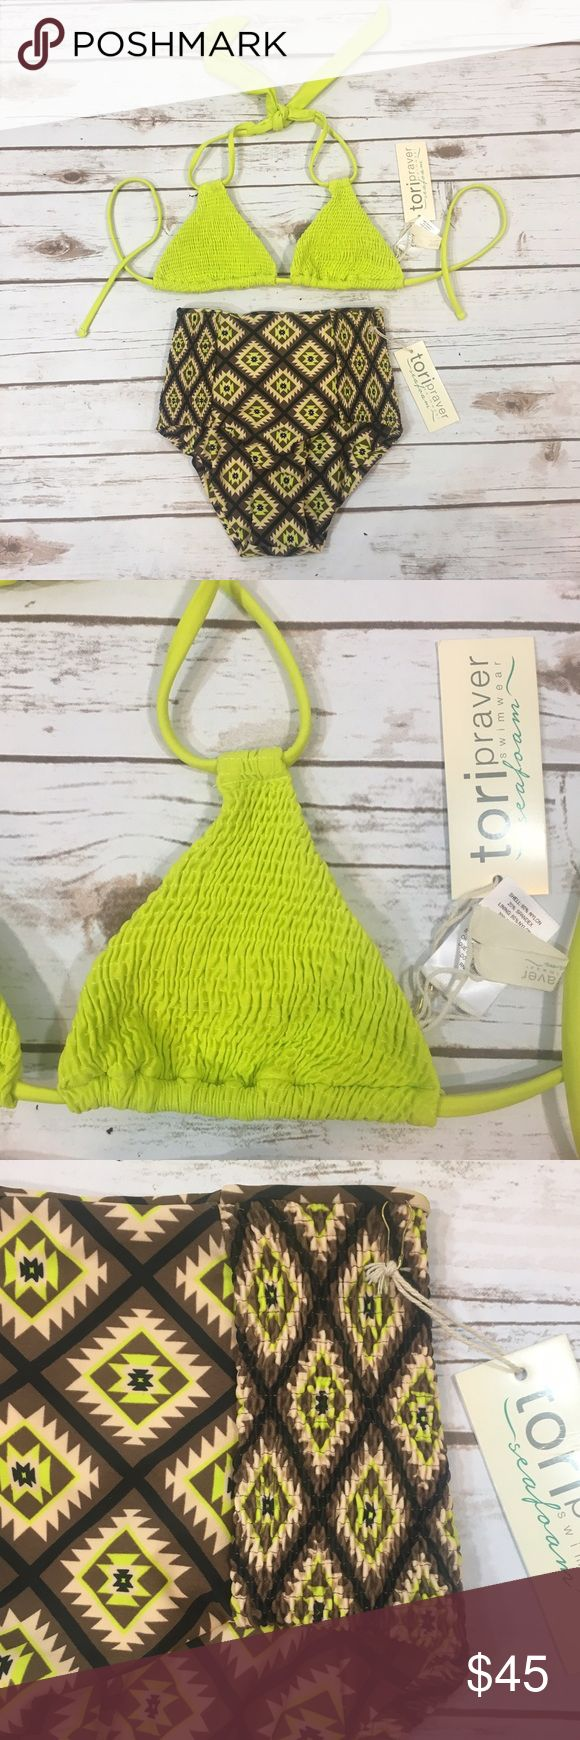 "Tori Praver High Waist Triangle Bikini Swimsuit Tori Praver Seafoam bikini swimsuit/bathing suit. Top is a bright chartreuse color, triangle style. Top does not have padding. Bottoms are brown geometric patterned and high waisted.  Both pieces are labeled size XS, womens.  Waist: 20-28"" Rise: 10.5"" Brand new with tags, no flaws to note. Tori Praver Swimwear Swim Bikinis"